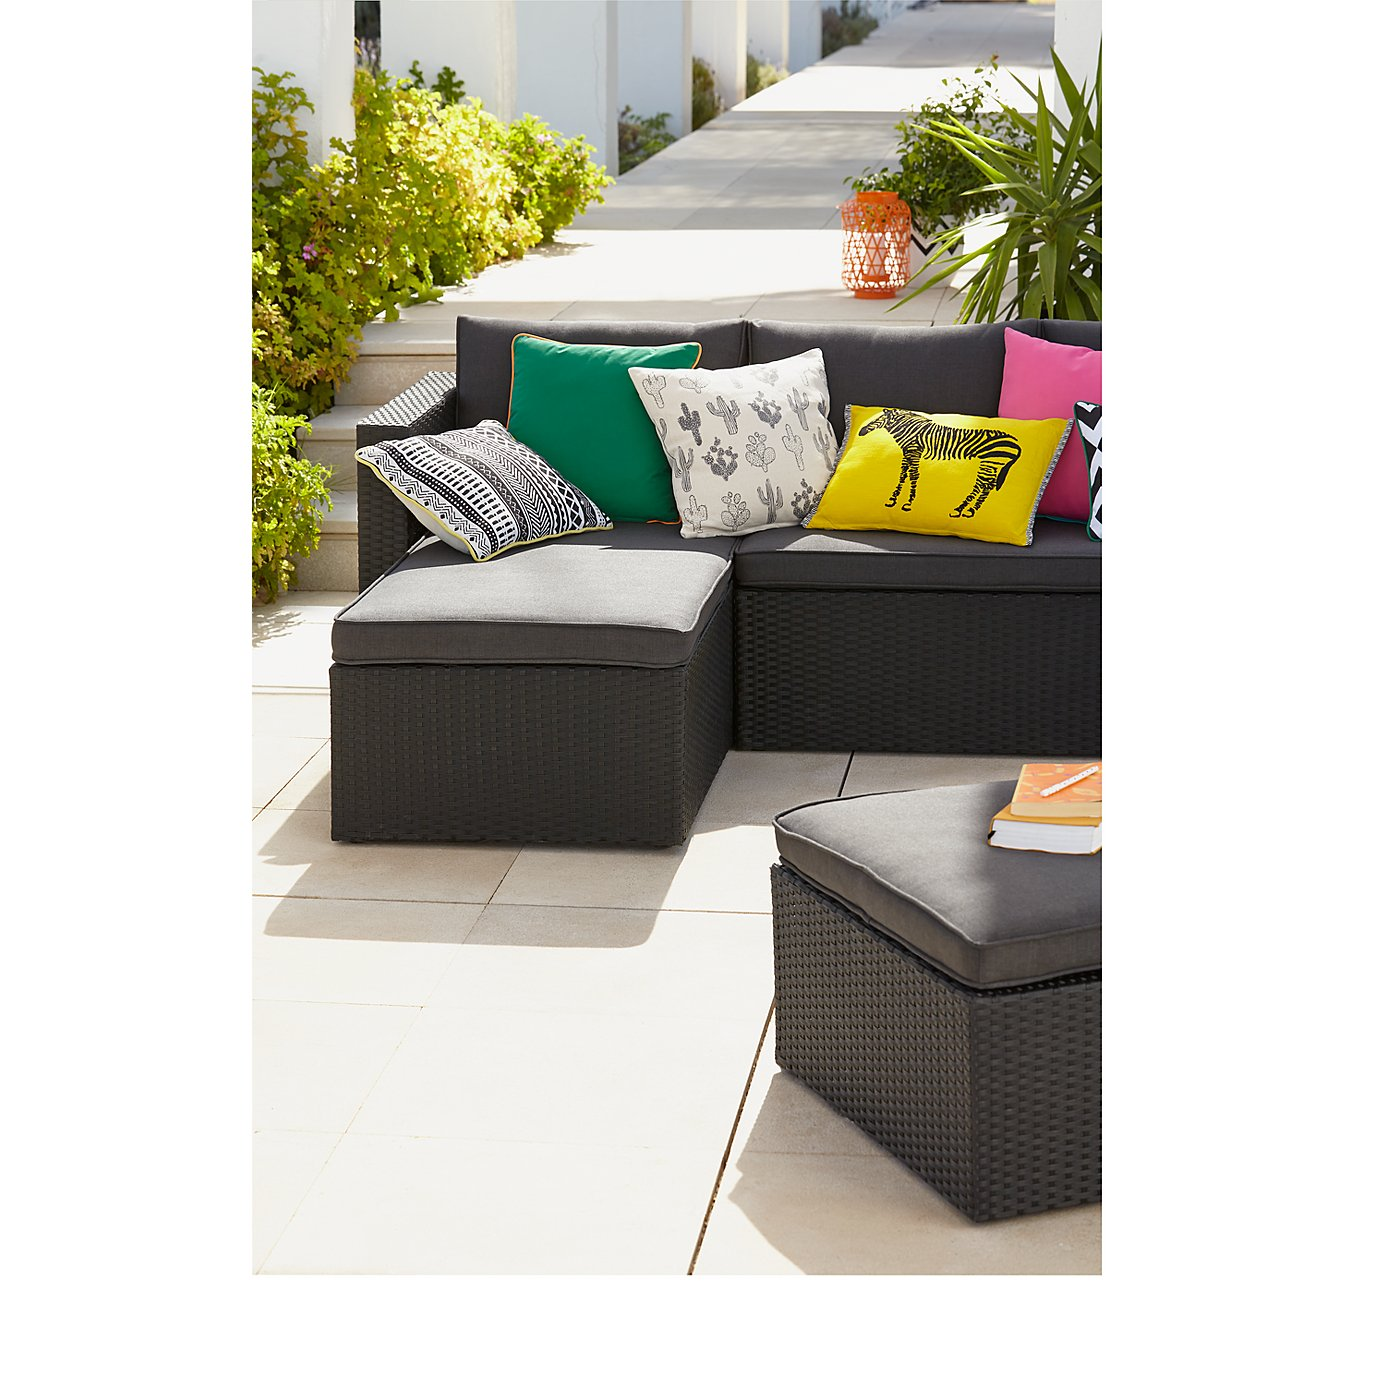 Orlando Chaise   Get The Look  Loading zoom. Orlando Chaise   Get The Look   Garden Furniture   George at ASDA